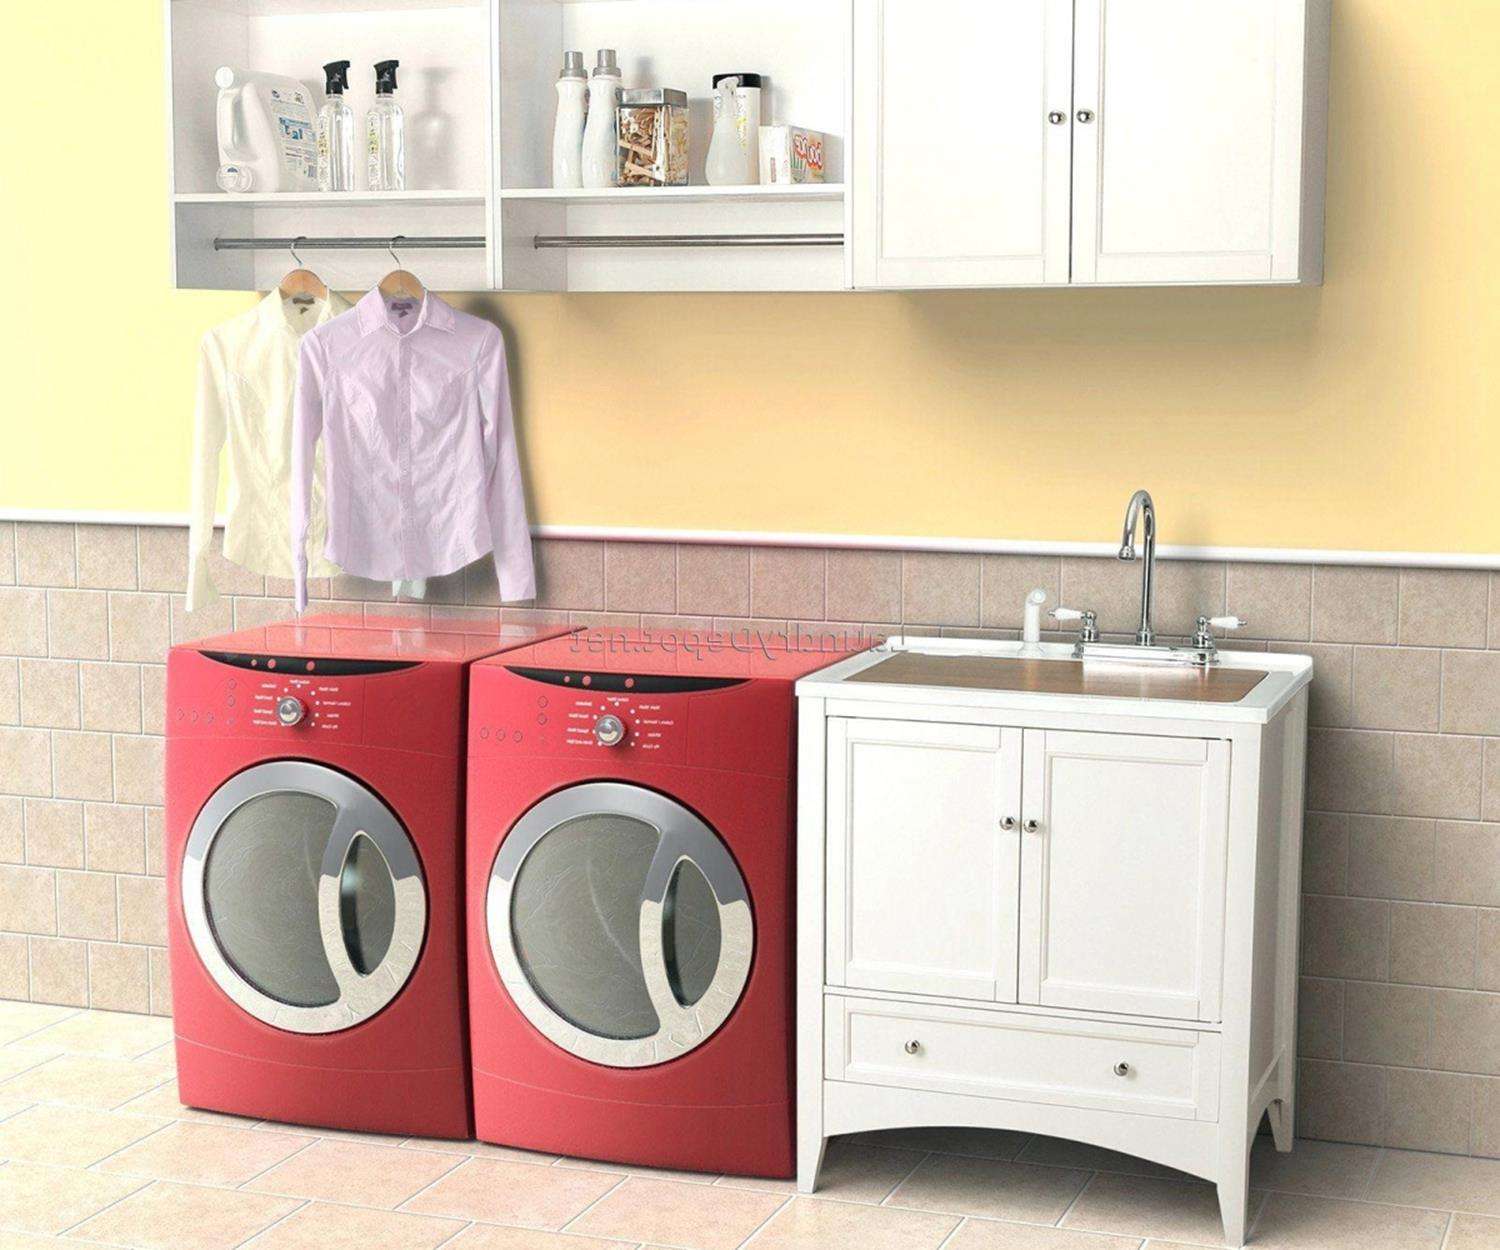 Best Cheap IKEA Cabinets Laundry Room Storage Ideas 34